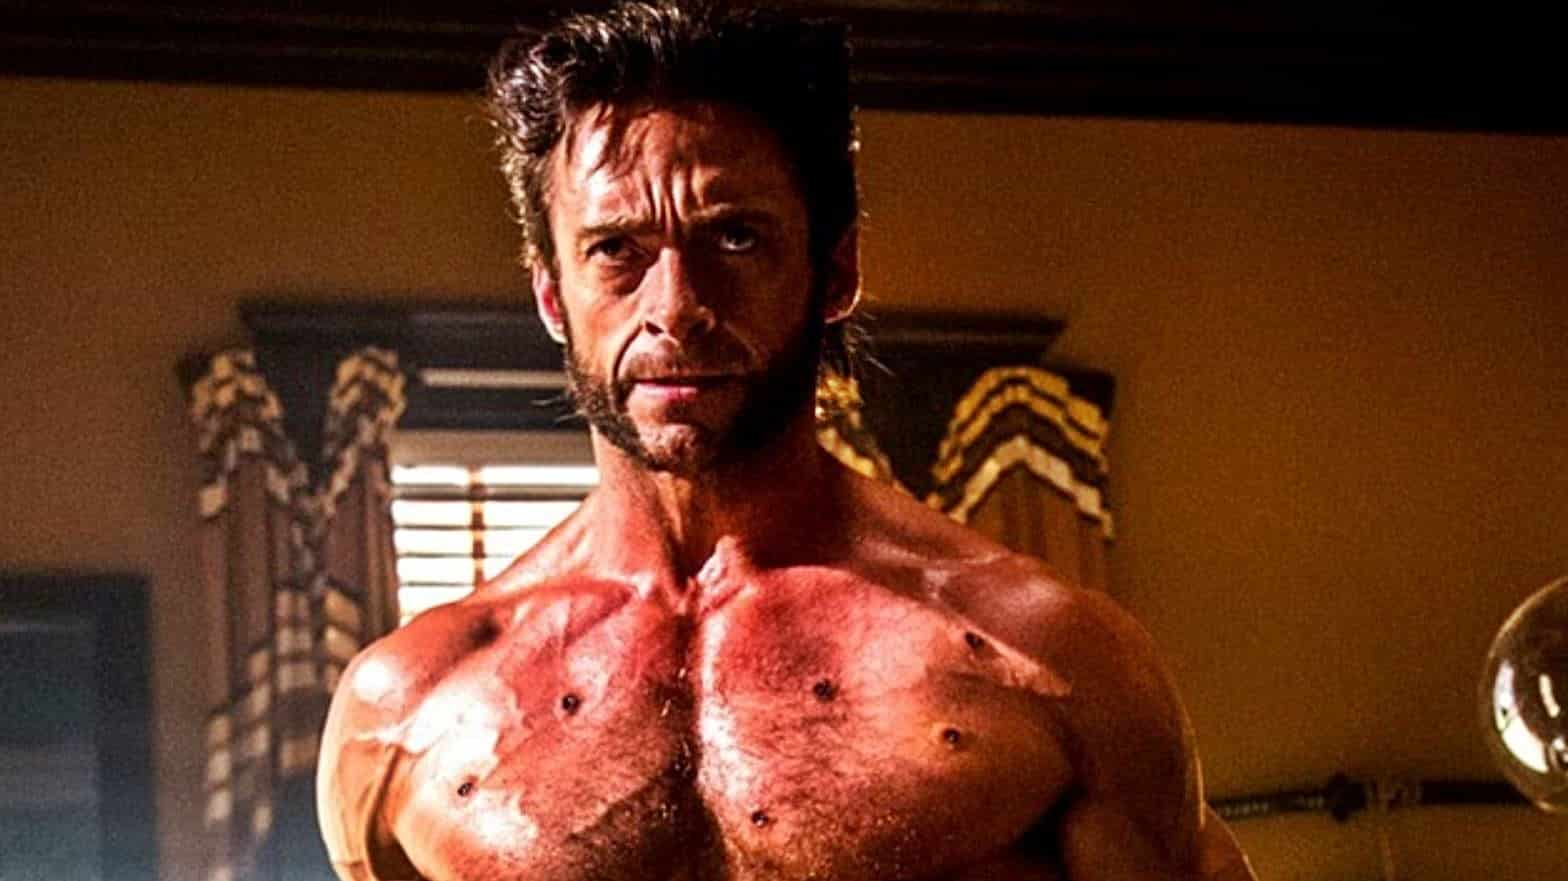 f0f77a3bcde Hugh Jackman's Big Announcement Revealed - Has Nothing To Do With ...